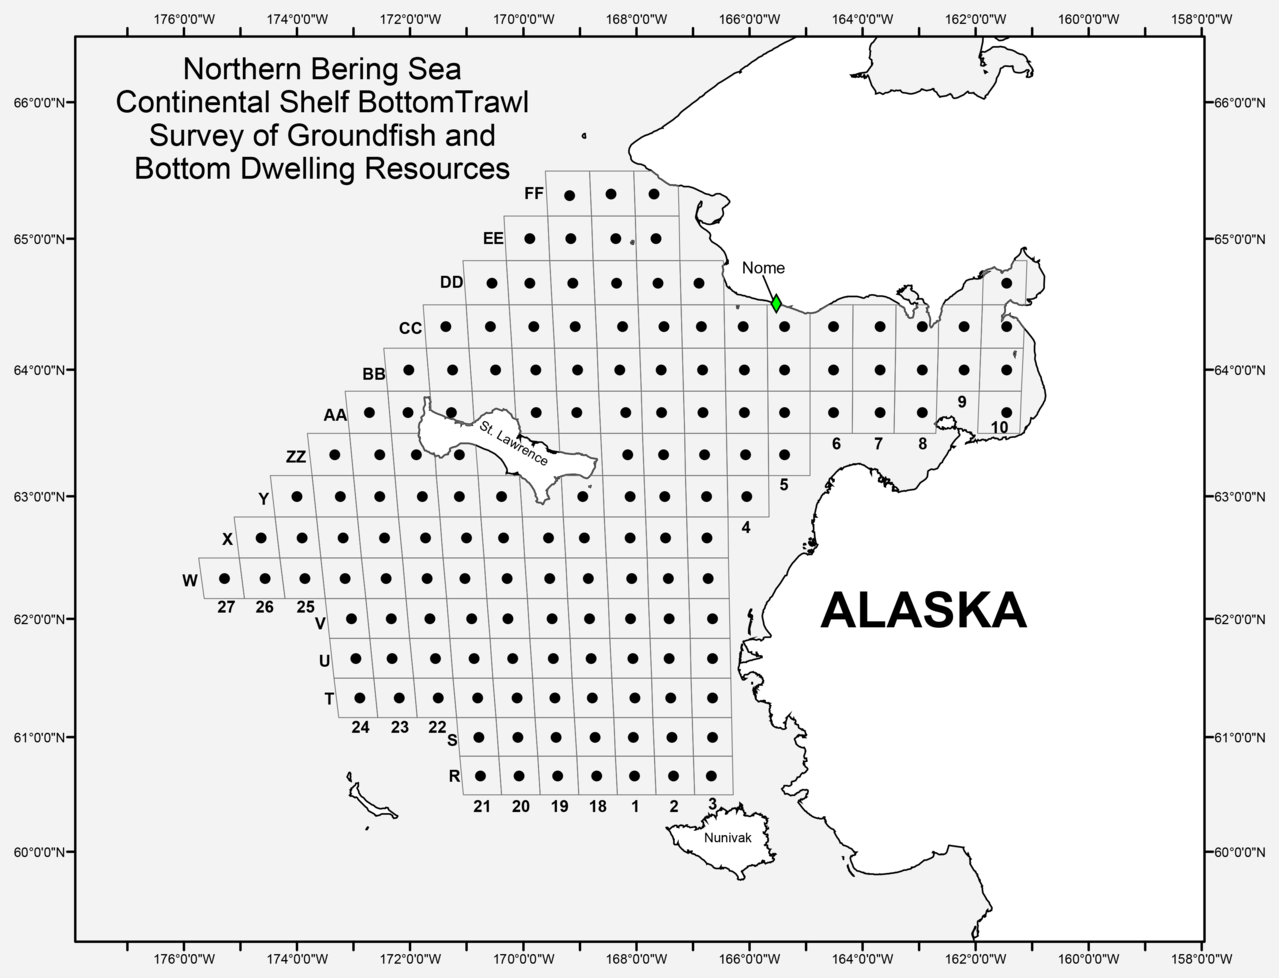 Northern Bering Sea Continental Shelf Bottom Trawl Survey of Groundfish and Bottom Dwelling Resources (map plot)